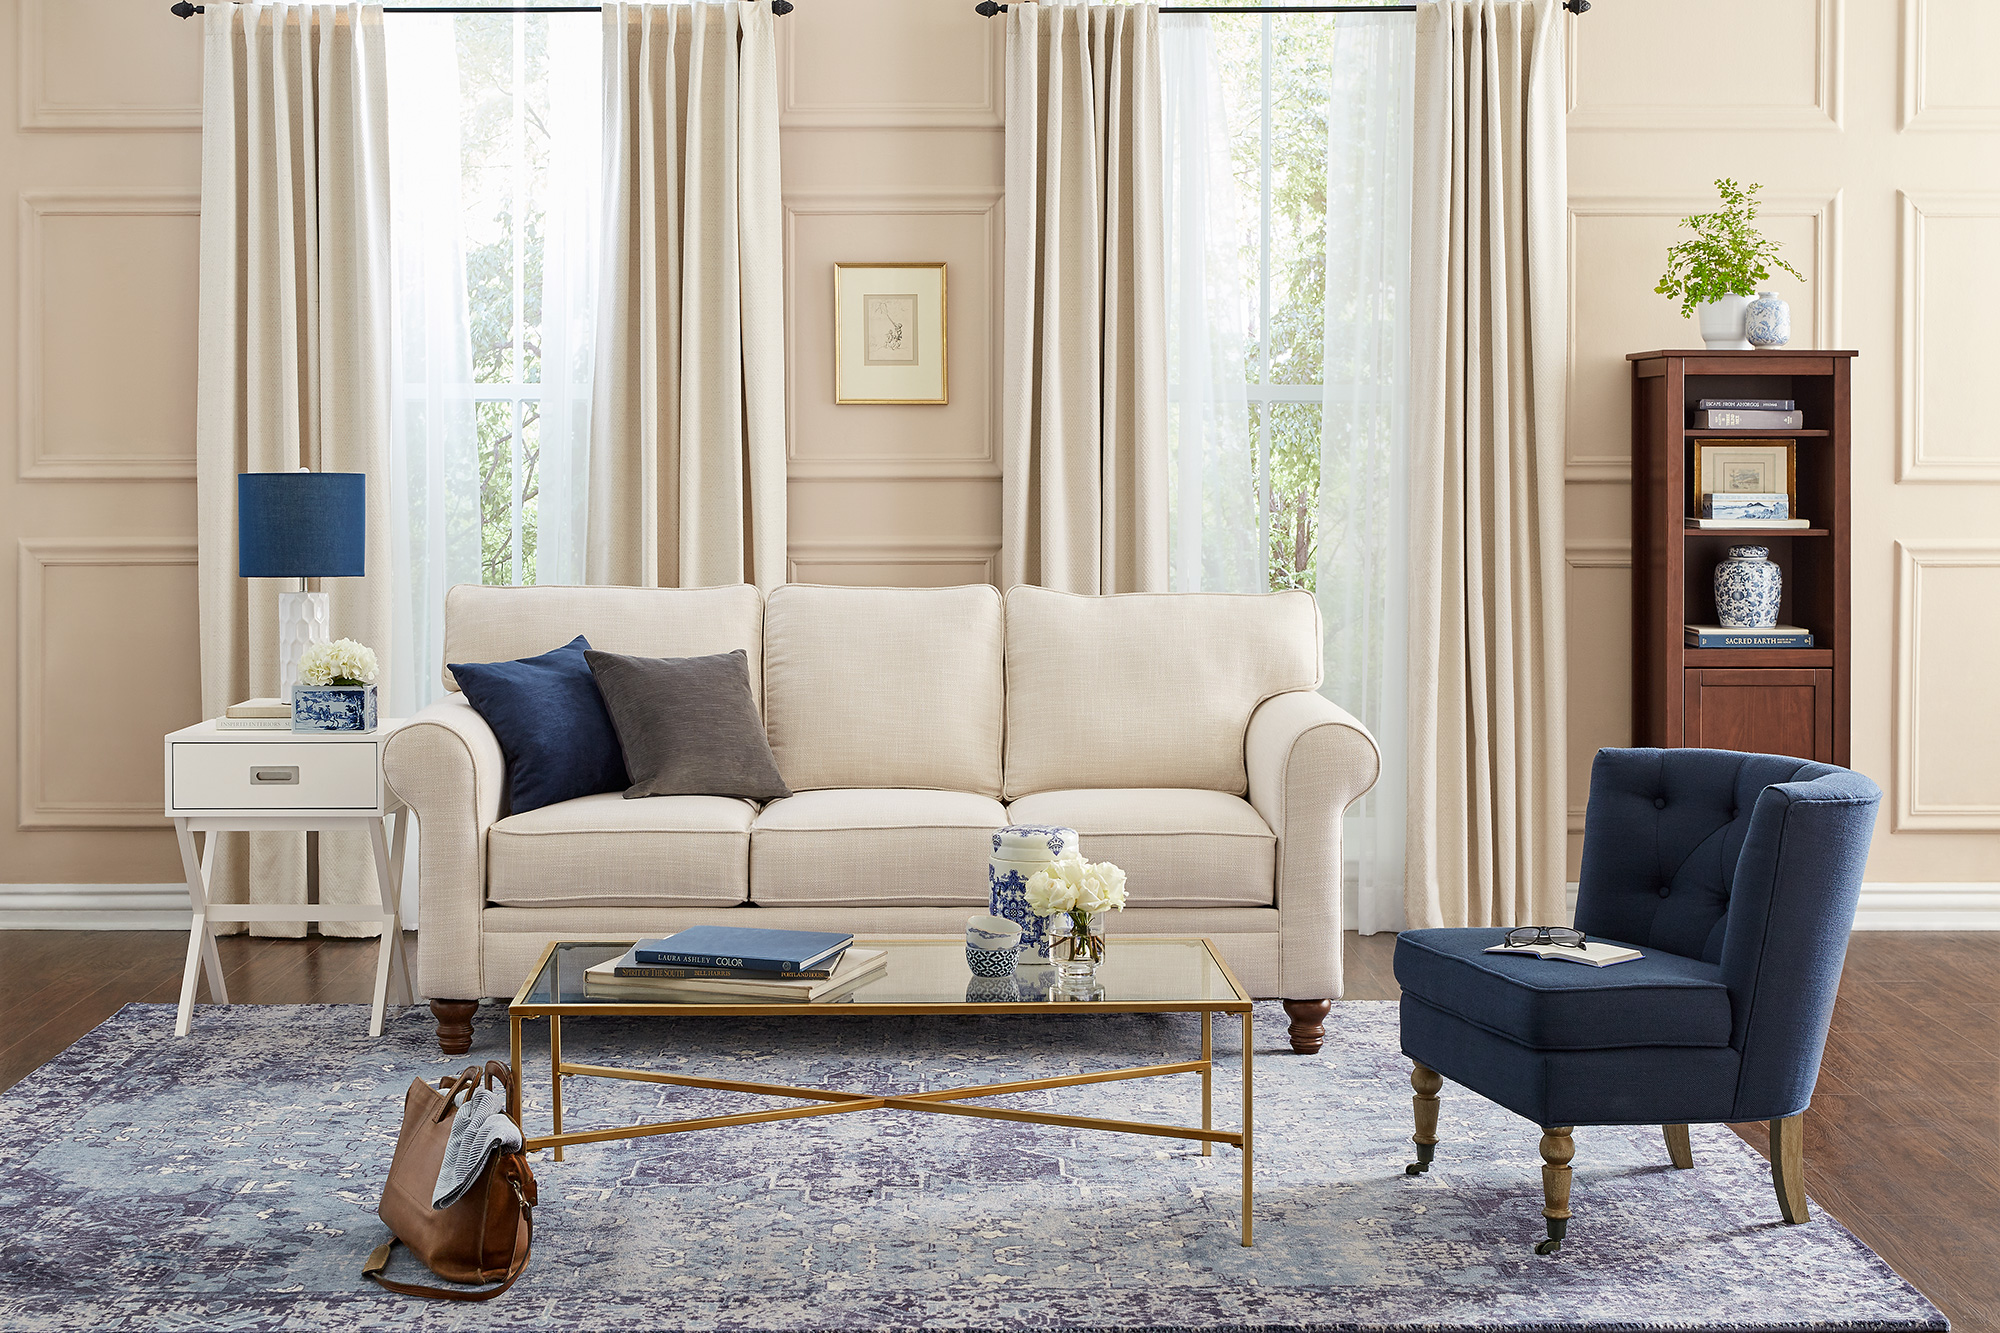 amazing savings eugene accent table walnut ravenna home living launches its own furnishings collection take peek the affordable items west elm headboard tall mattress battery